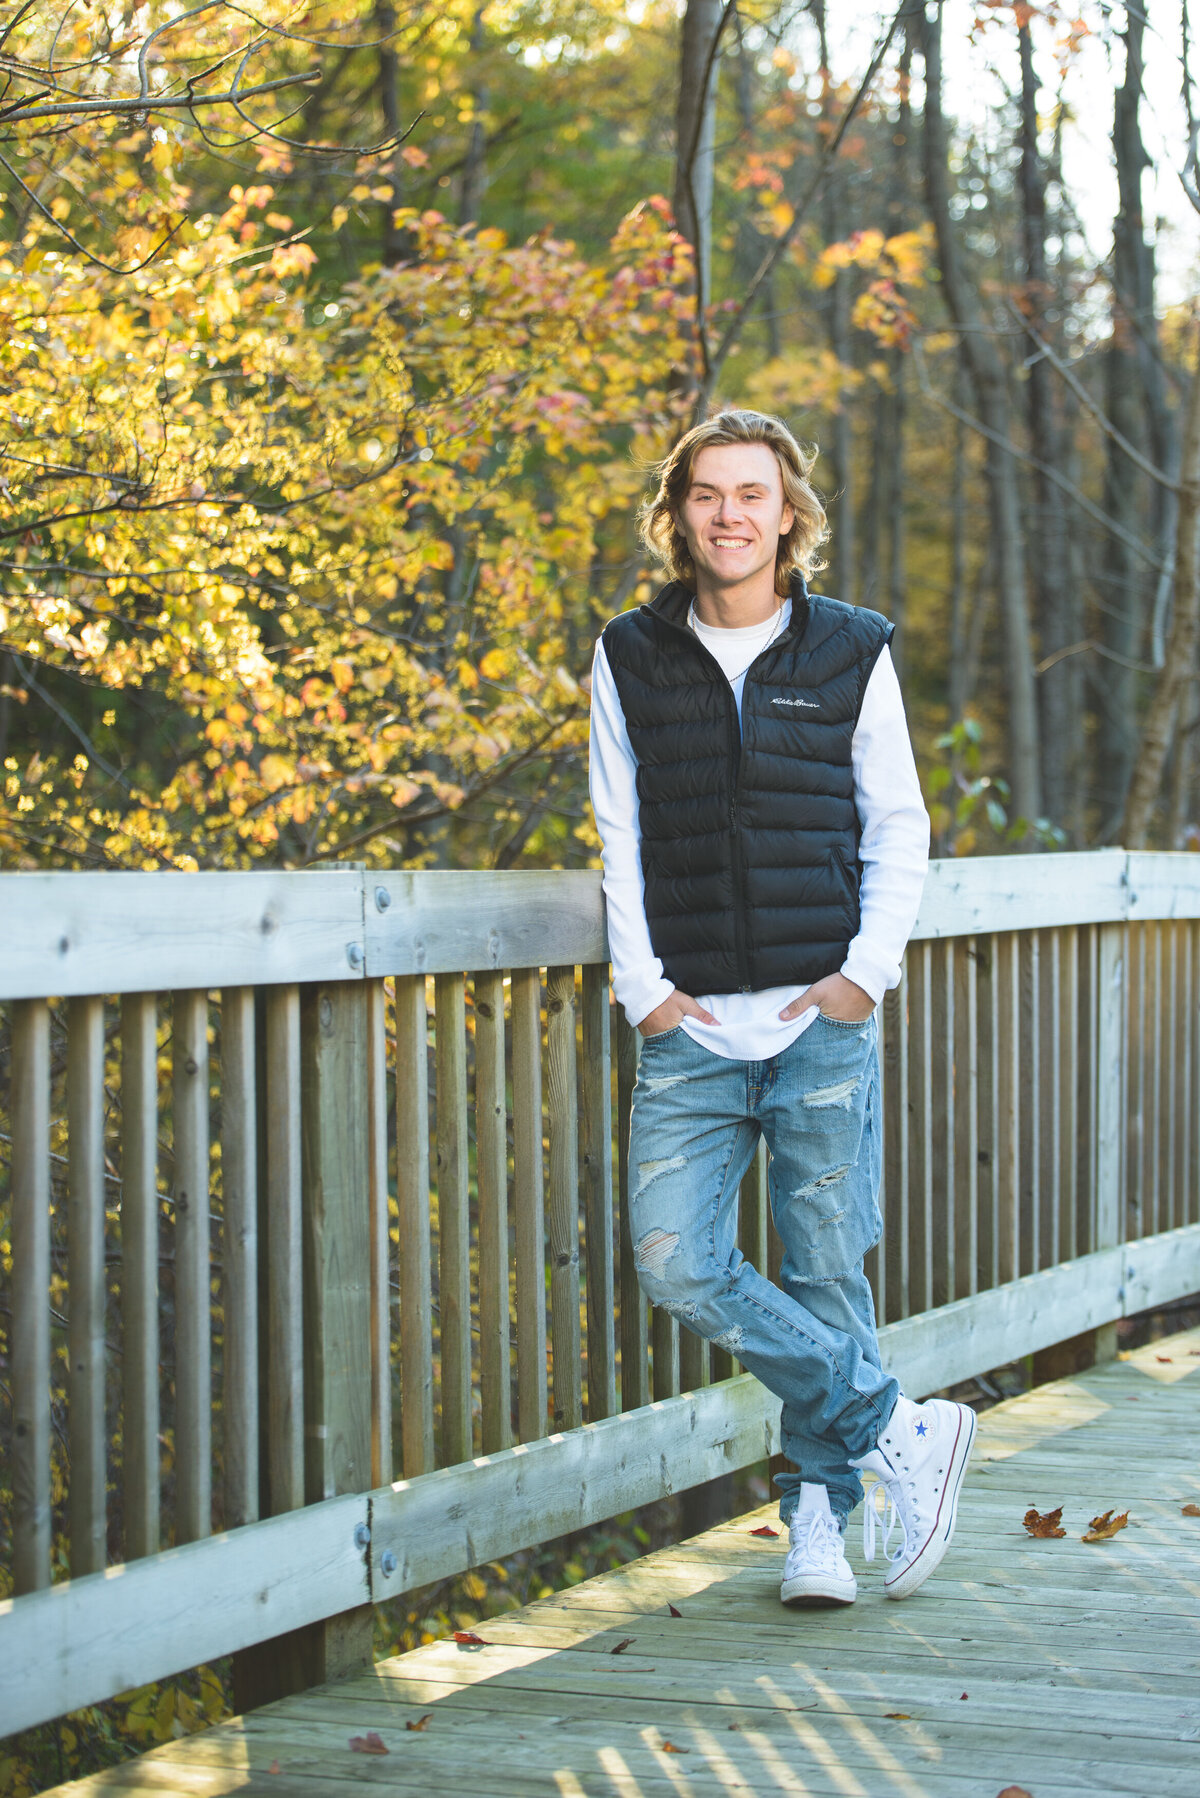 Grand-Rapids-MI-Outdoor-Senior-Pictures-02